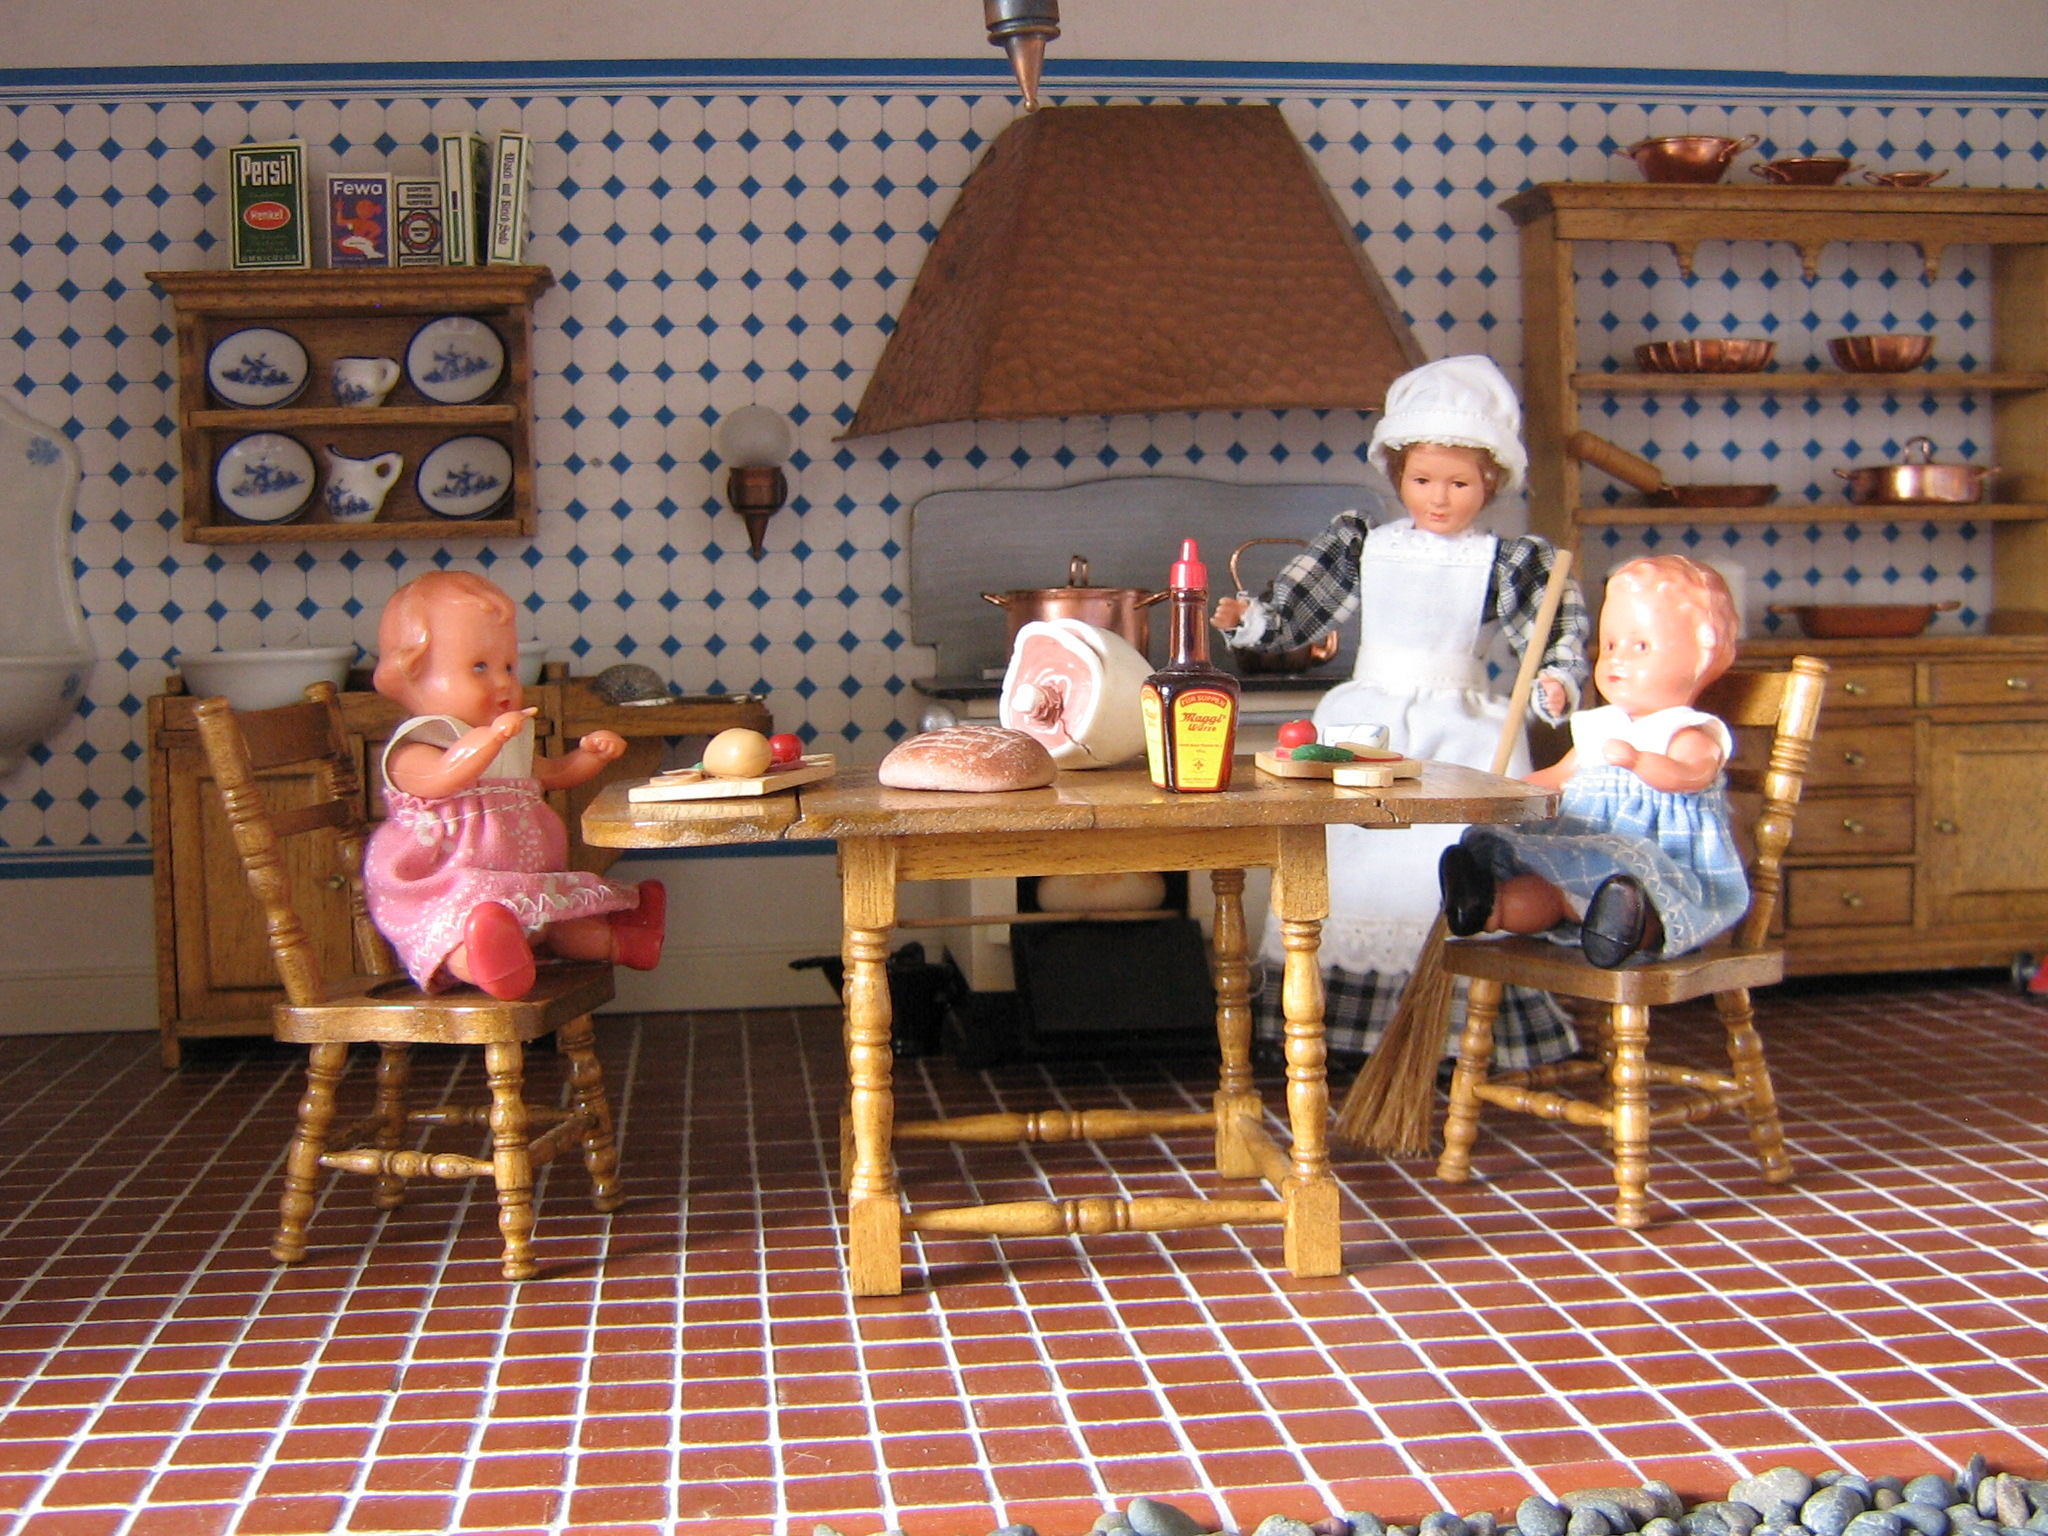 Kitchen Dollhouse Furniture Thedollhousecompanycom Launches New Website For Dollhouse